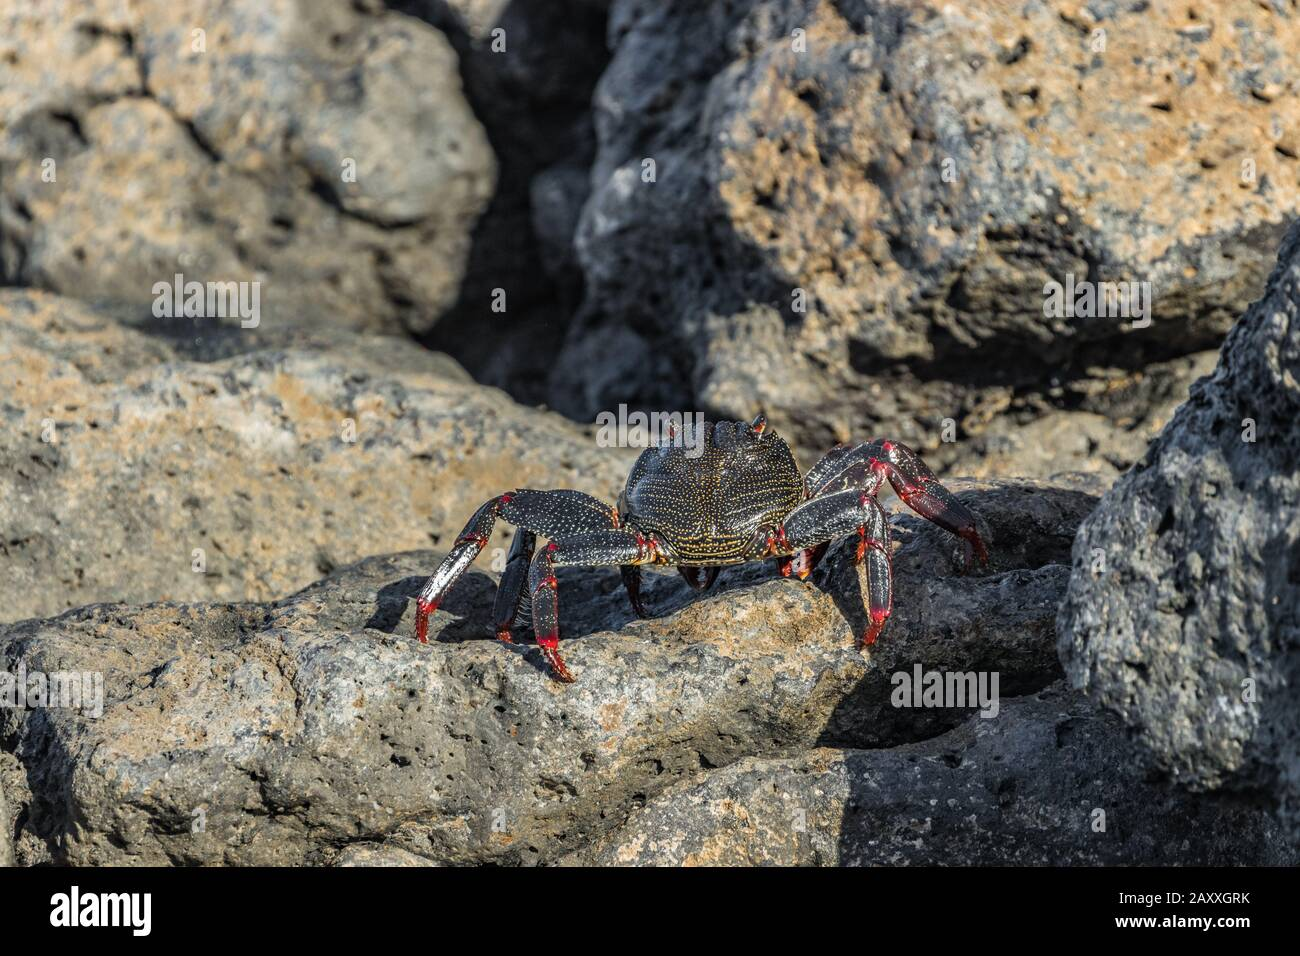 Red rock crab - Grapsus adscensionis - crawling on dark lava stones to bask in the sun. Southern ocean shore of Tenerife, Canary Islands, Spain. Stock Photo